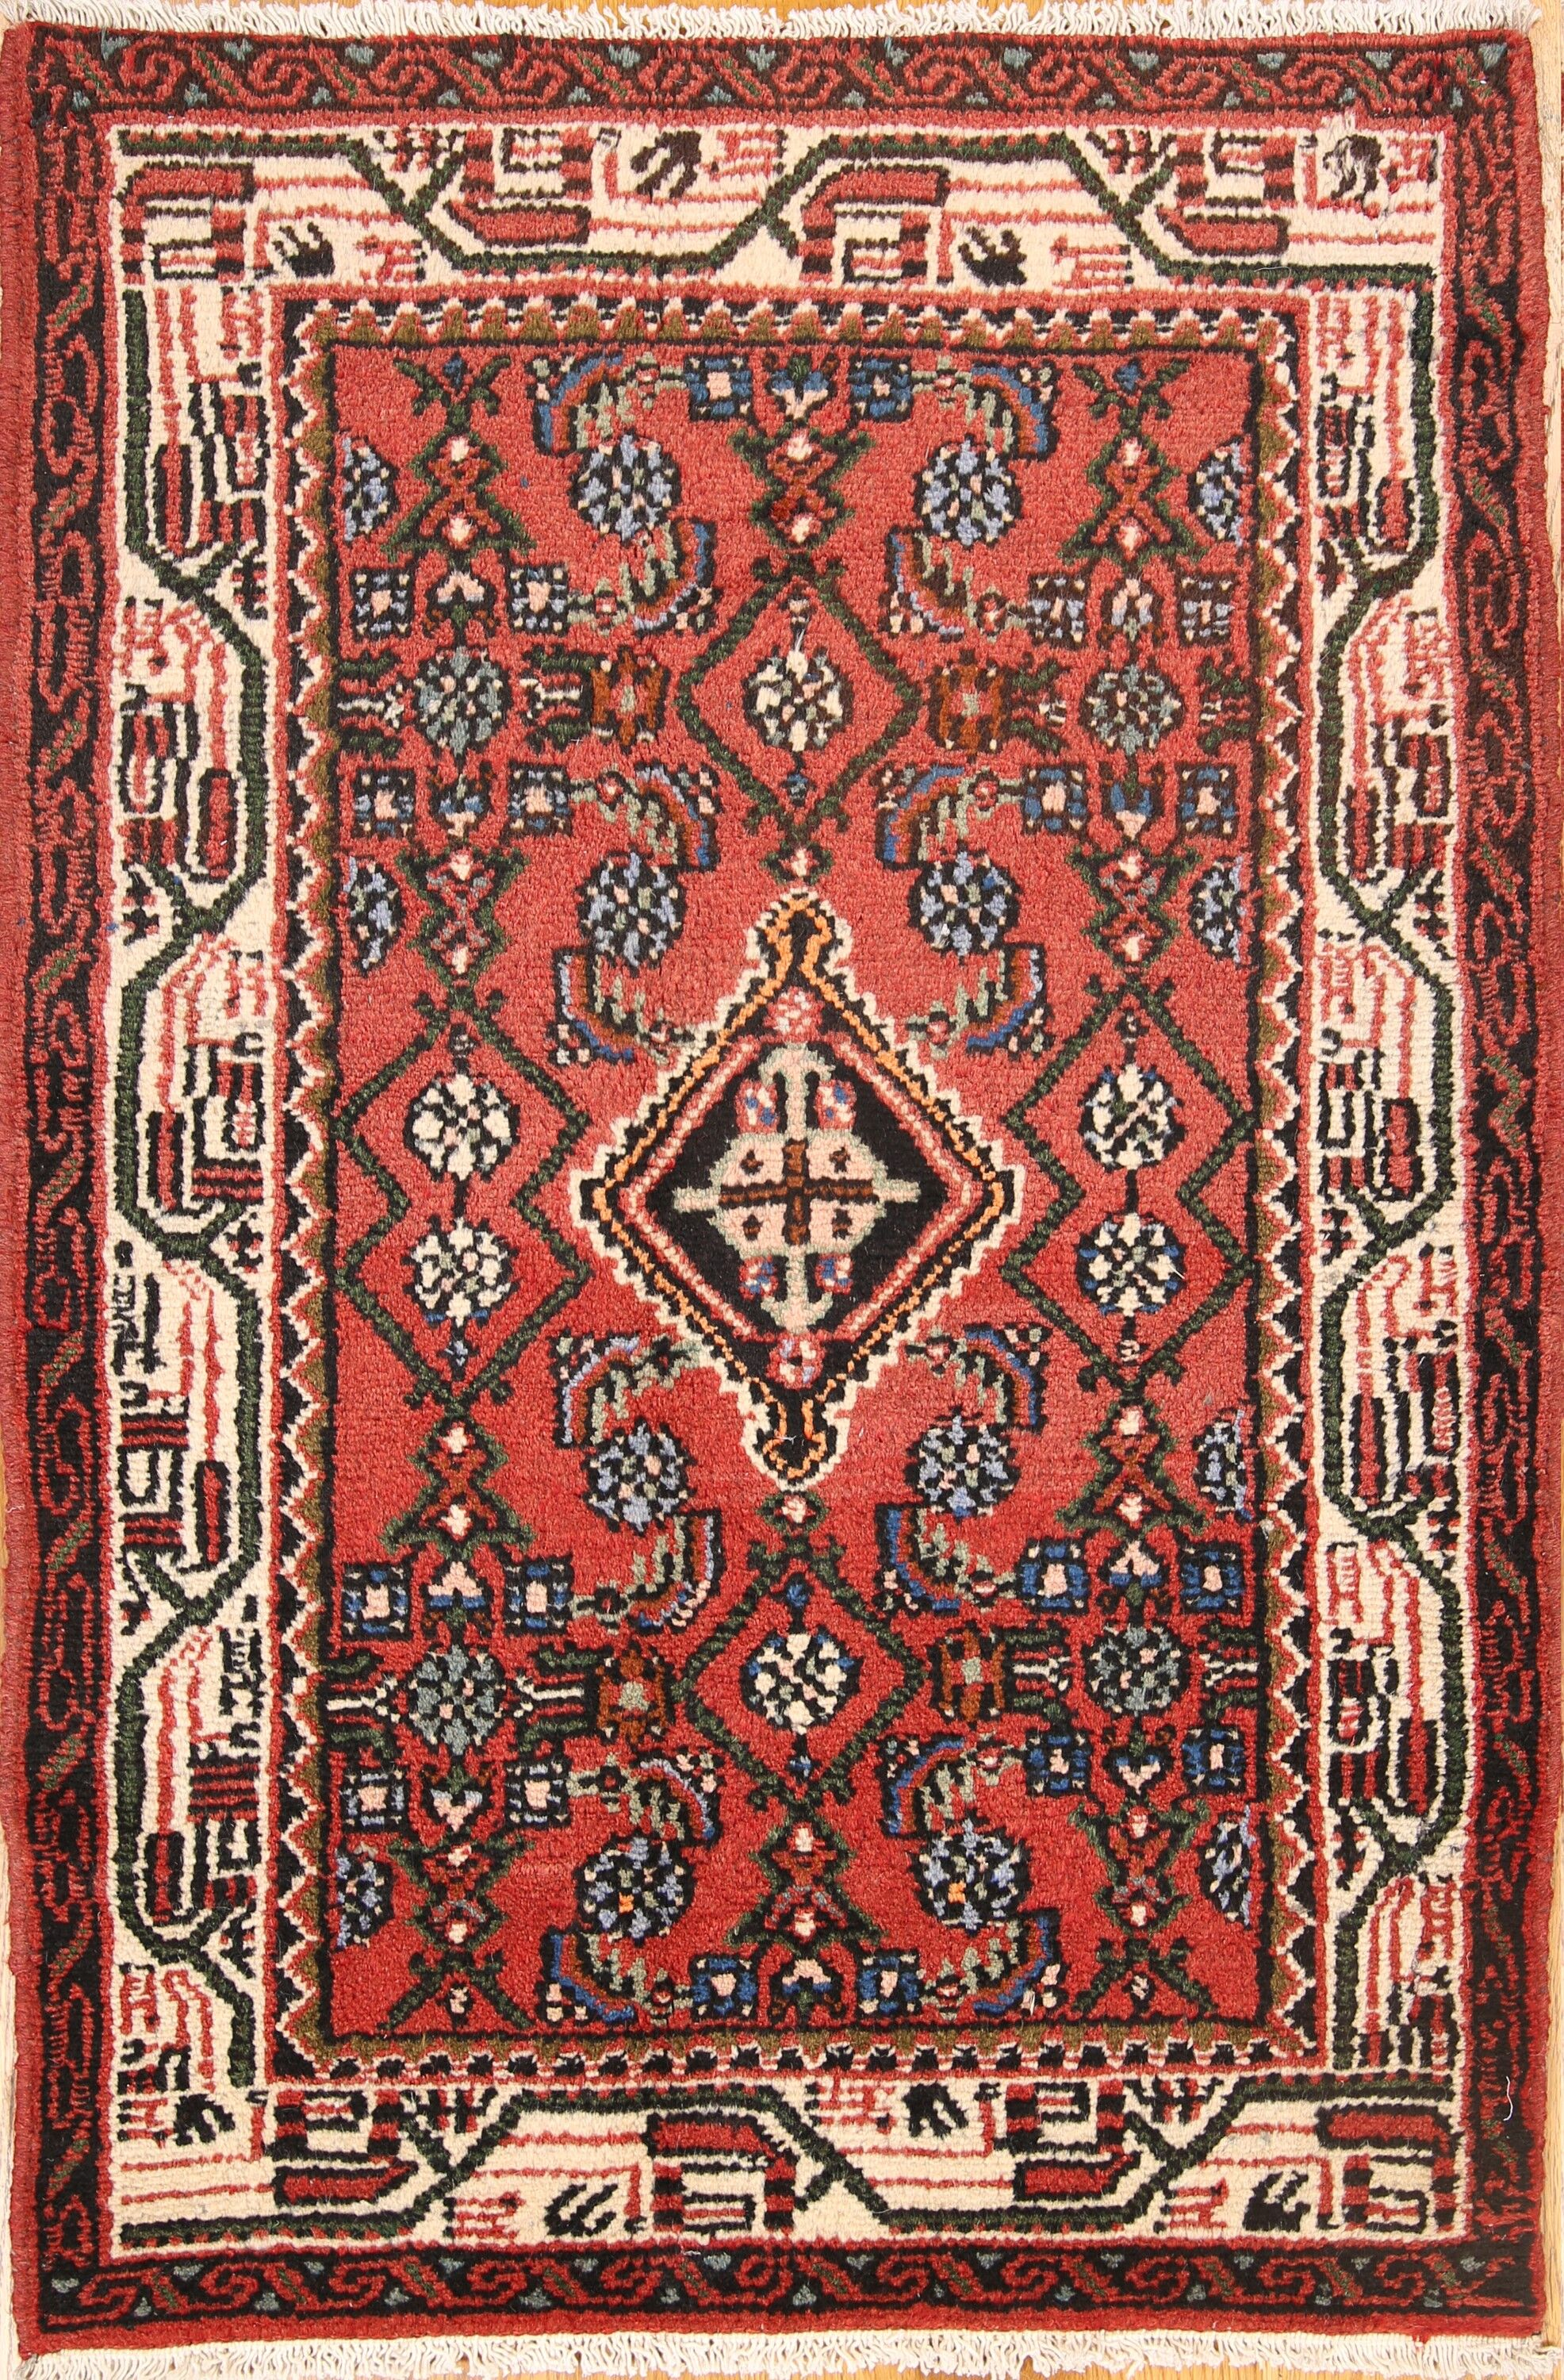 One-of-a-Kind Traditional Geometric Hamedan Persian Hand-Knotted 2'6